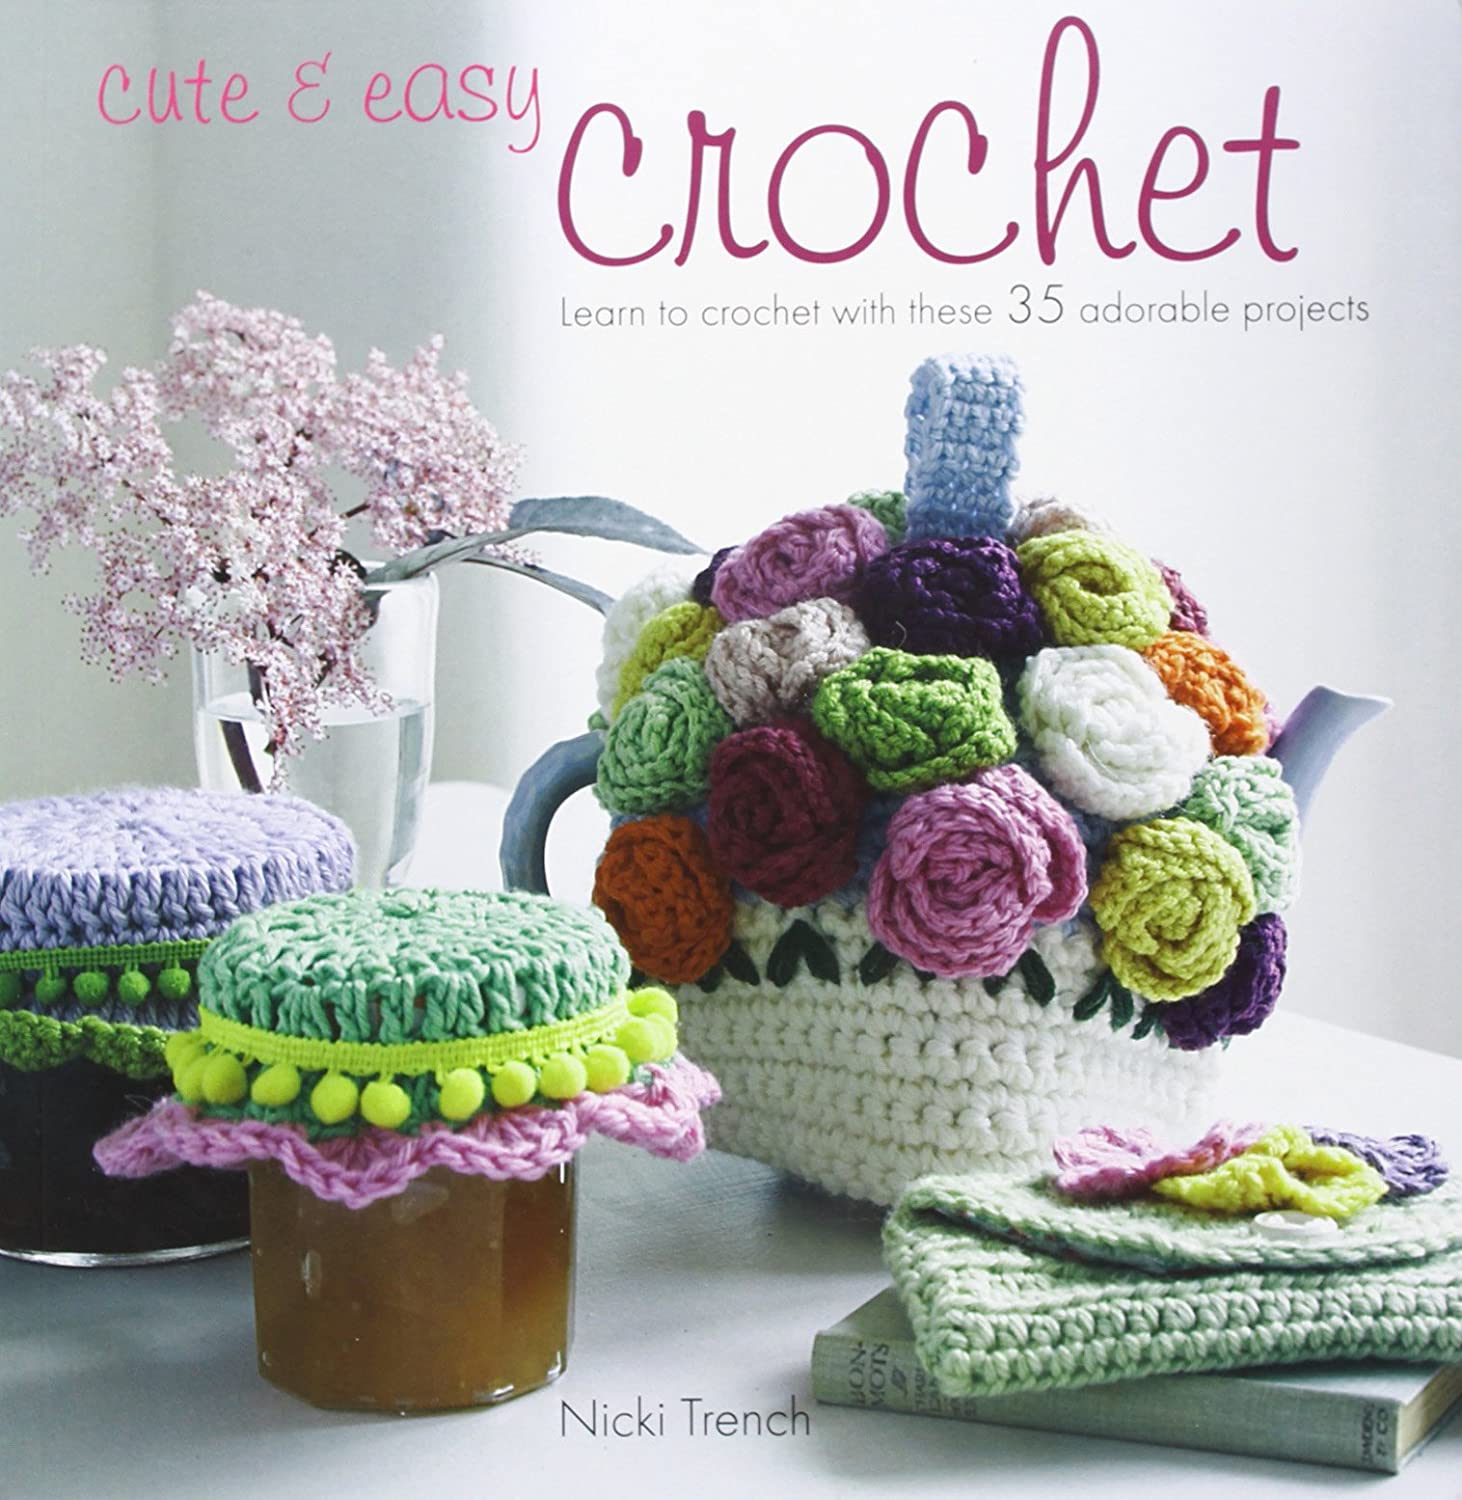 Cute and Easy Crochet